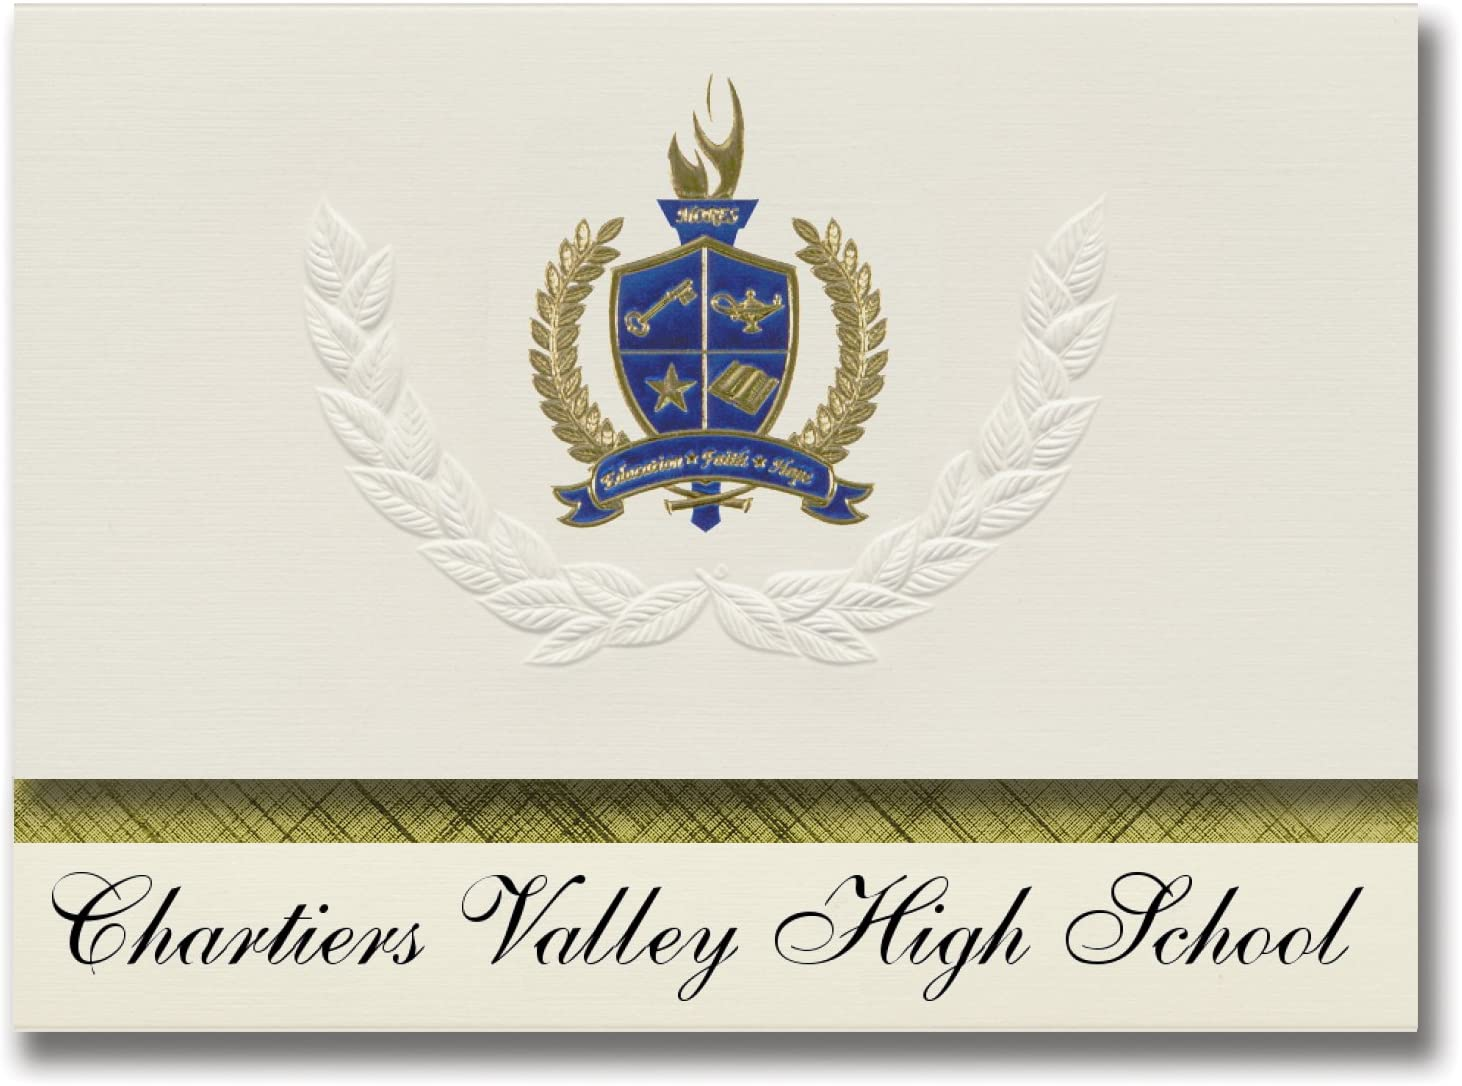 Signature Announcements Chartiers Valley High School (Bridgeville, PA) Graduation Announcements, Presidential style, Basic package of 25 with Gold & Blue Metallic Foil seal